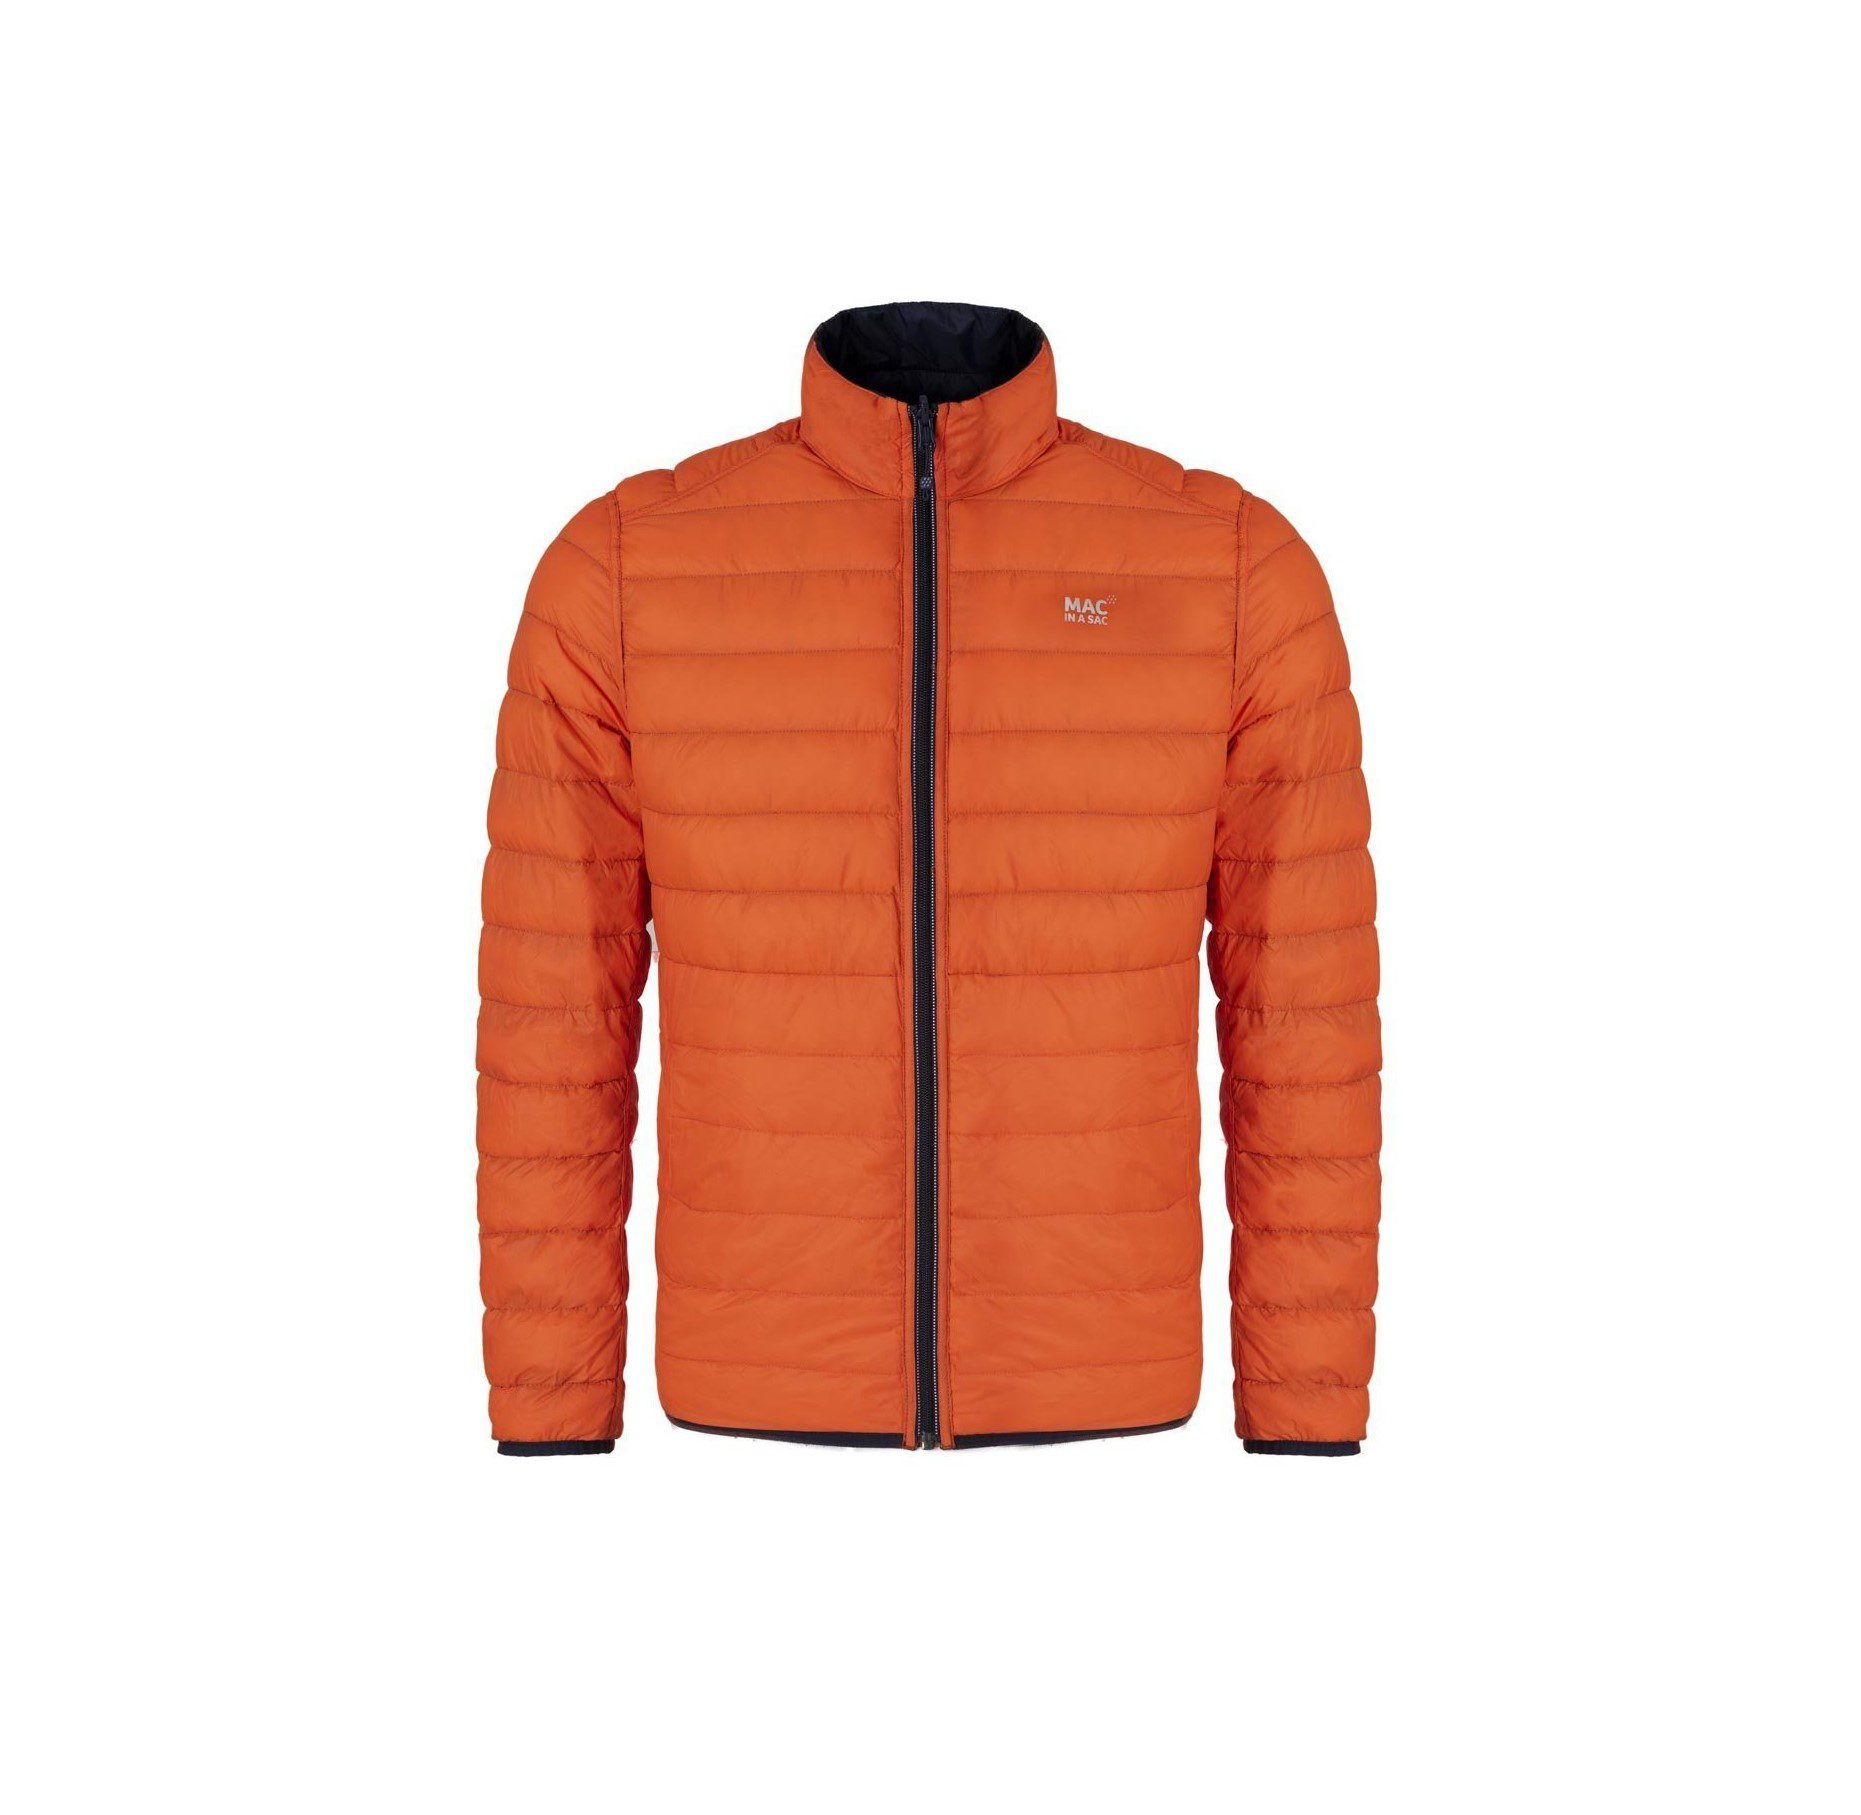 Target Dry Mens Polar Down Jacket - Flame